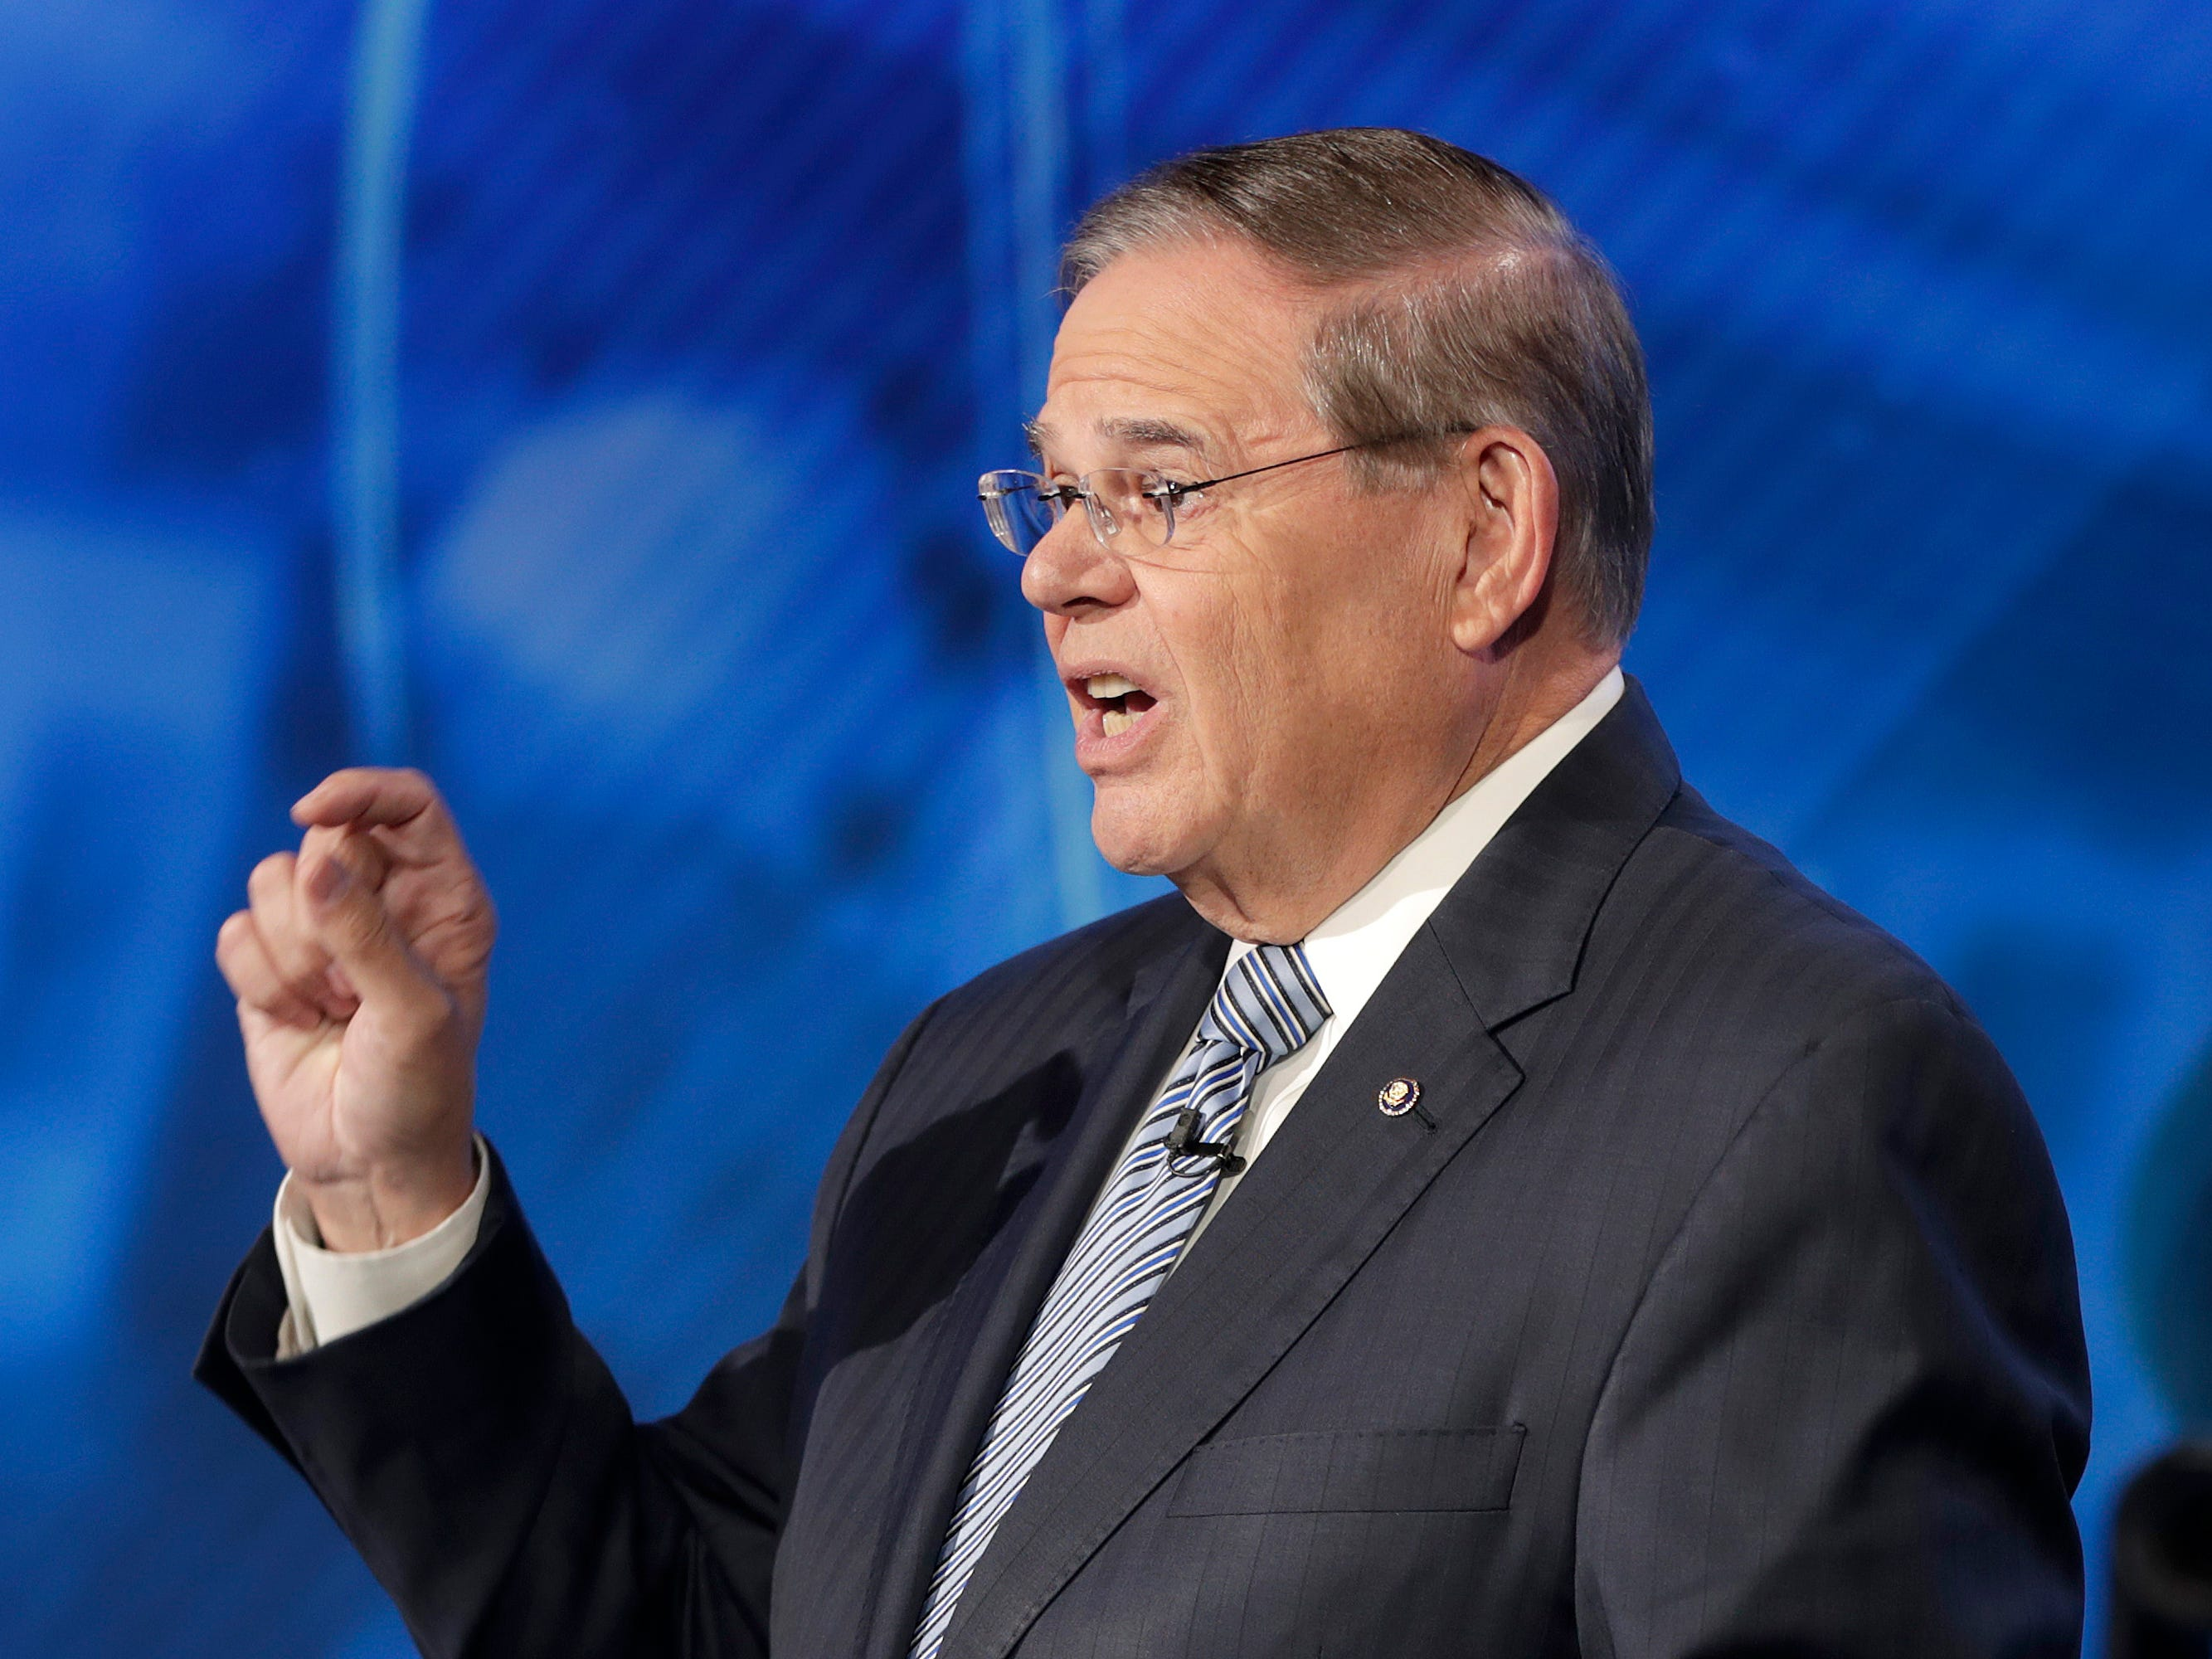 New Jersey Sen. Bob Menendez, the Democrat candidate for the U.S. Senate race in New Jersey, speaks during a debate with Bob Hugin, the Republican candidate, Wednesday, Oct. 24, 2018, in Newark, N.J.